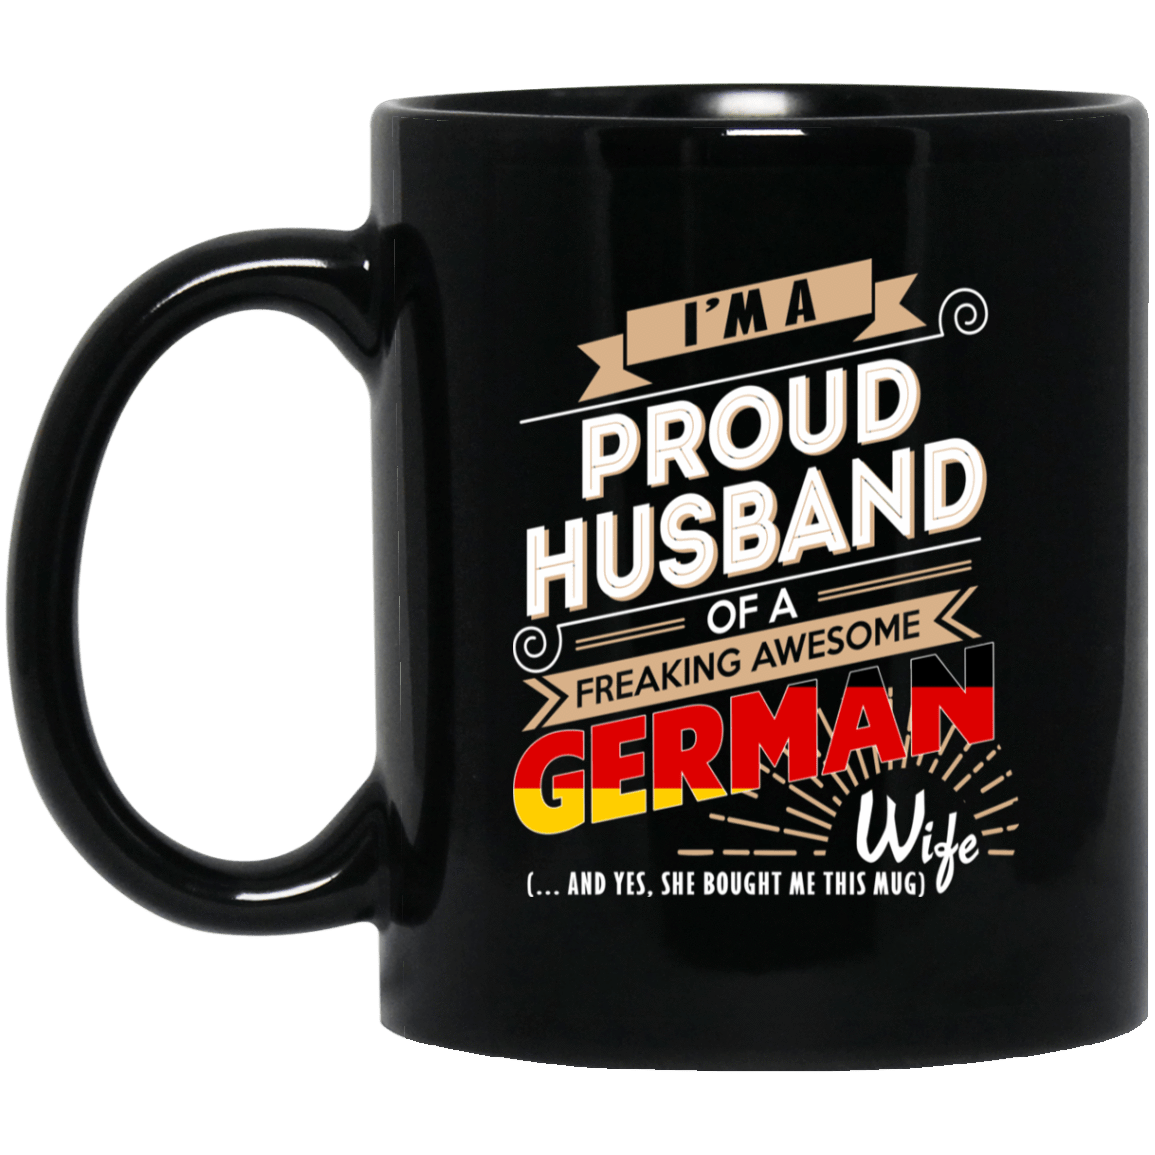 Proud Husband Of A Freaking Awesome German Wife Mug 1065-10181-72136525-49307 - Tee Ript